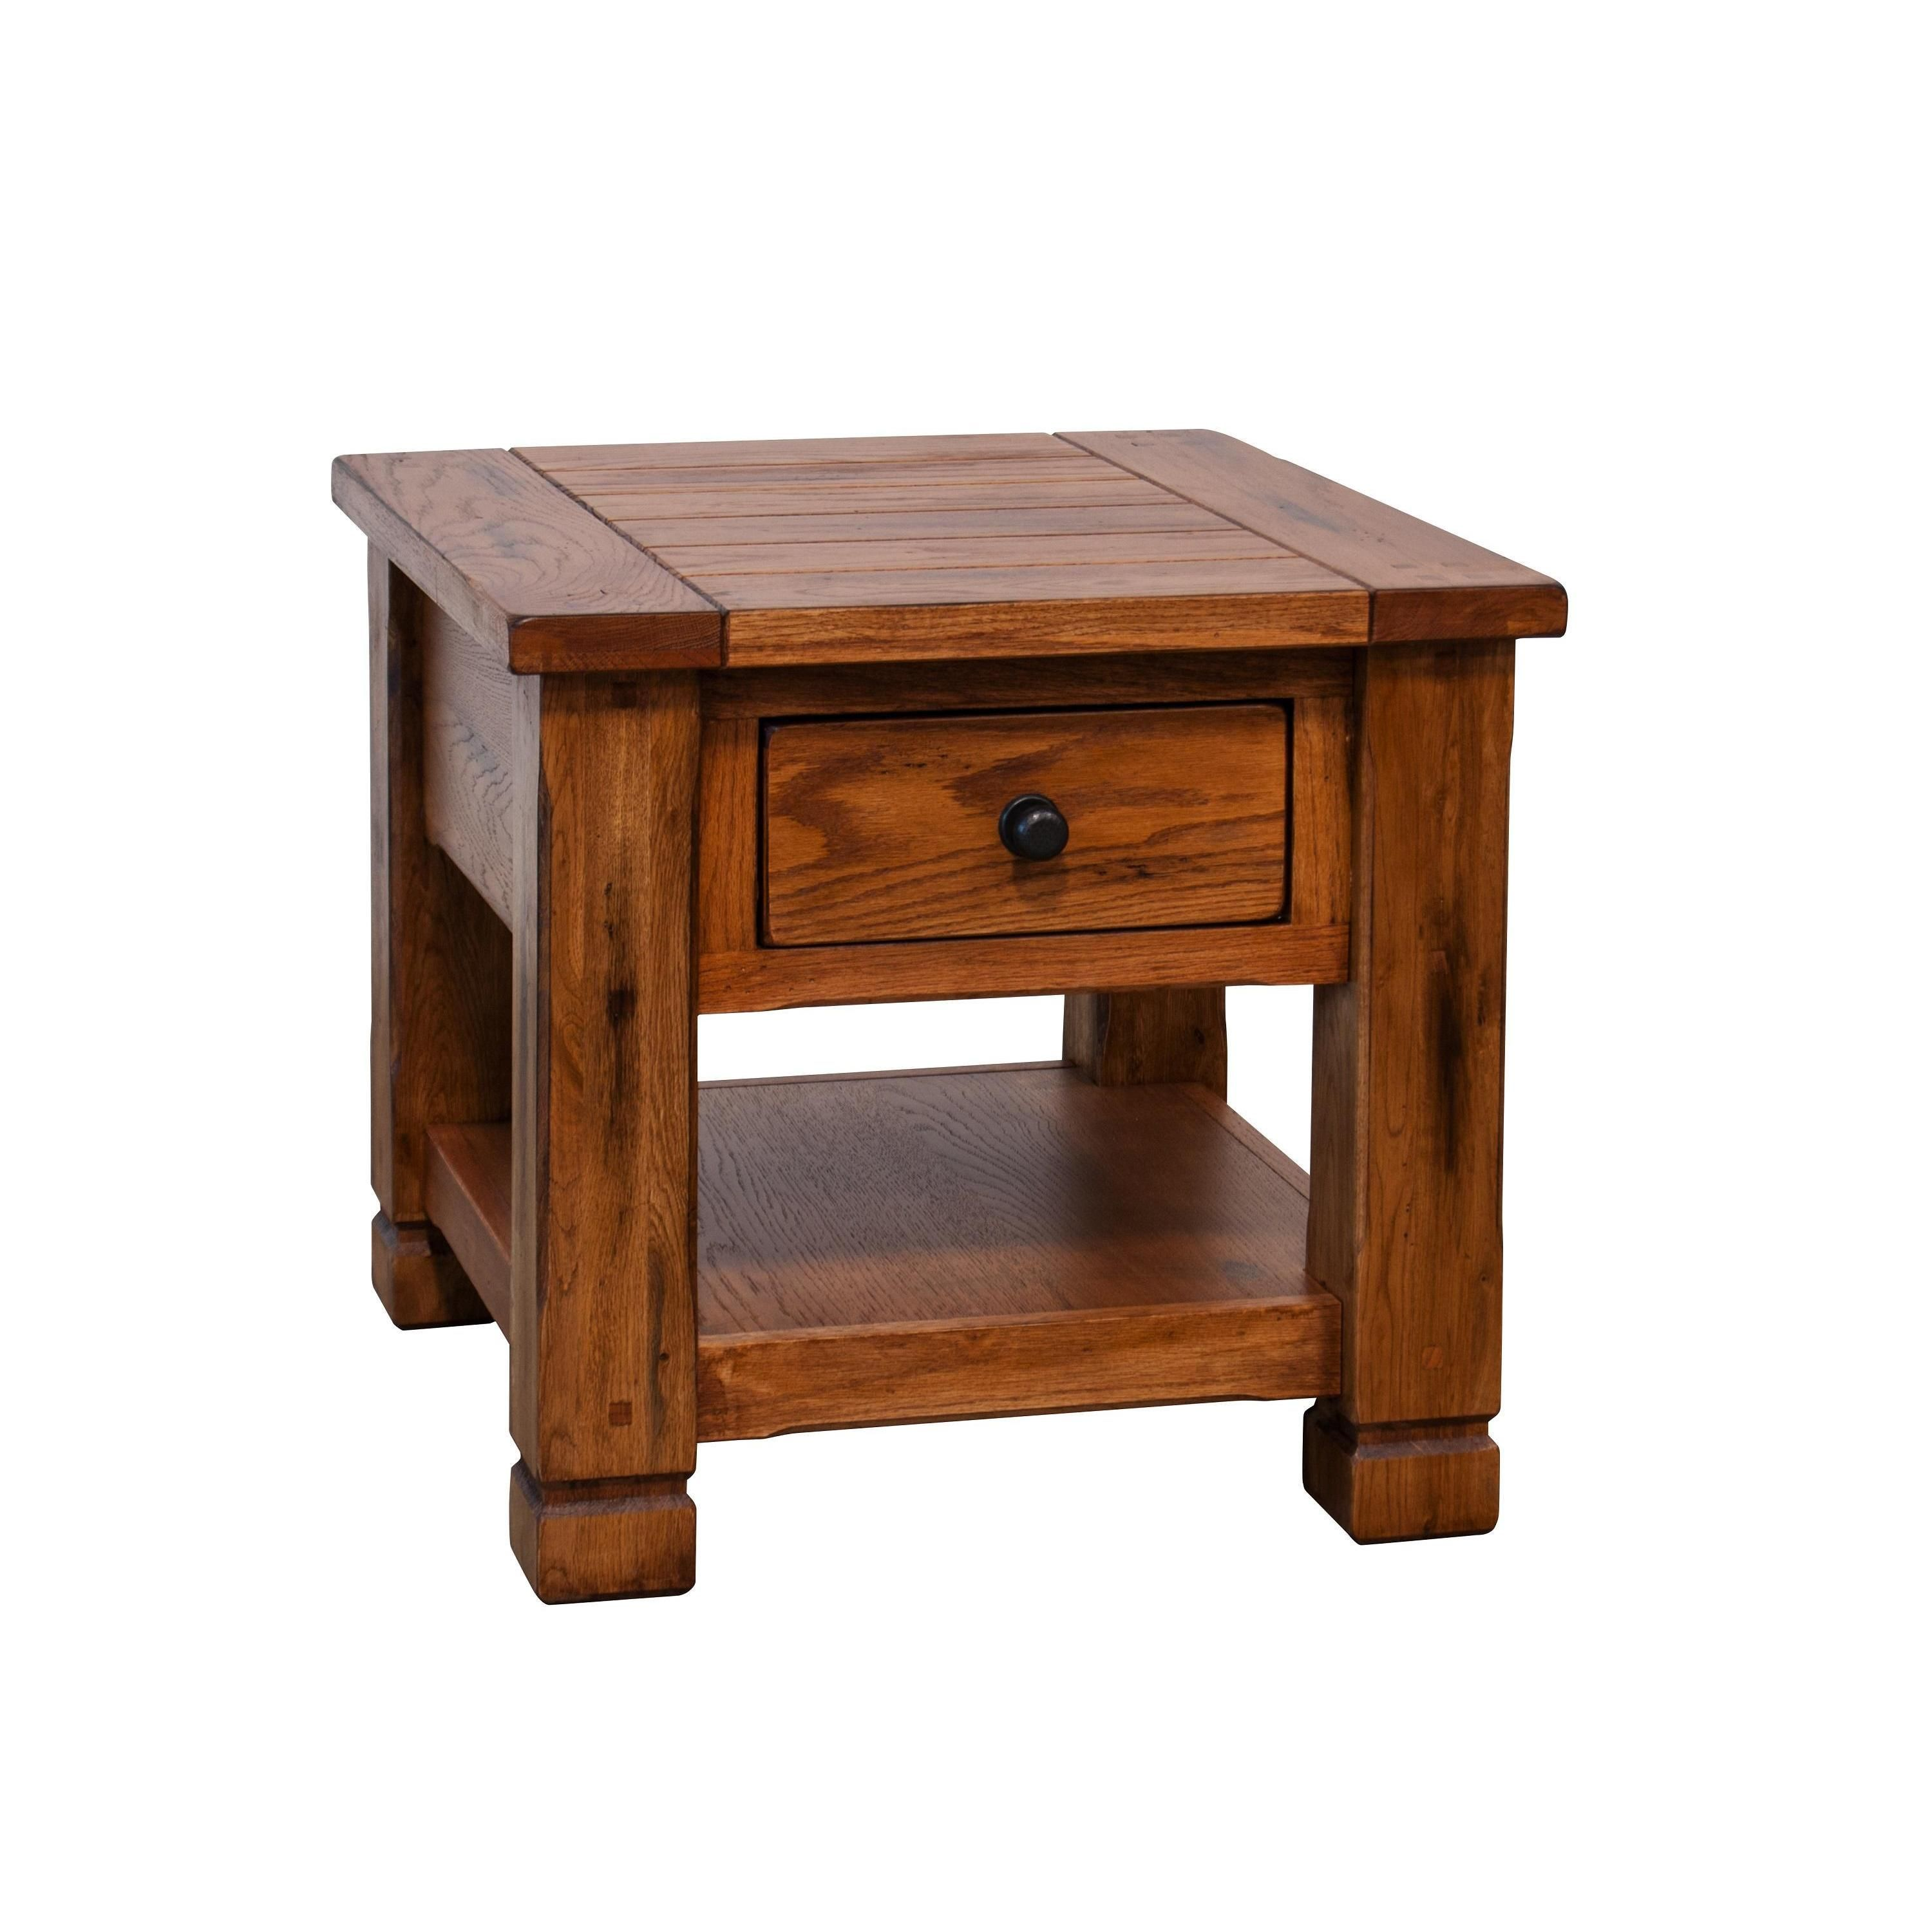 sedona rustic end table oak brown products accent white leather trunk stackable tables ikea target winsome solid wood and metal side cabinets with glass doors small vintage legs